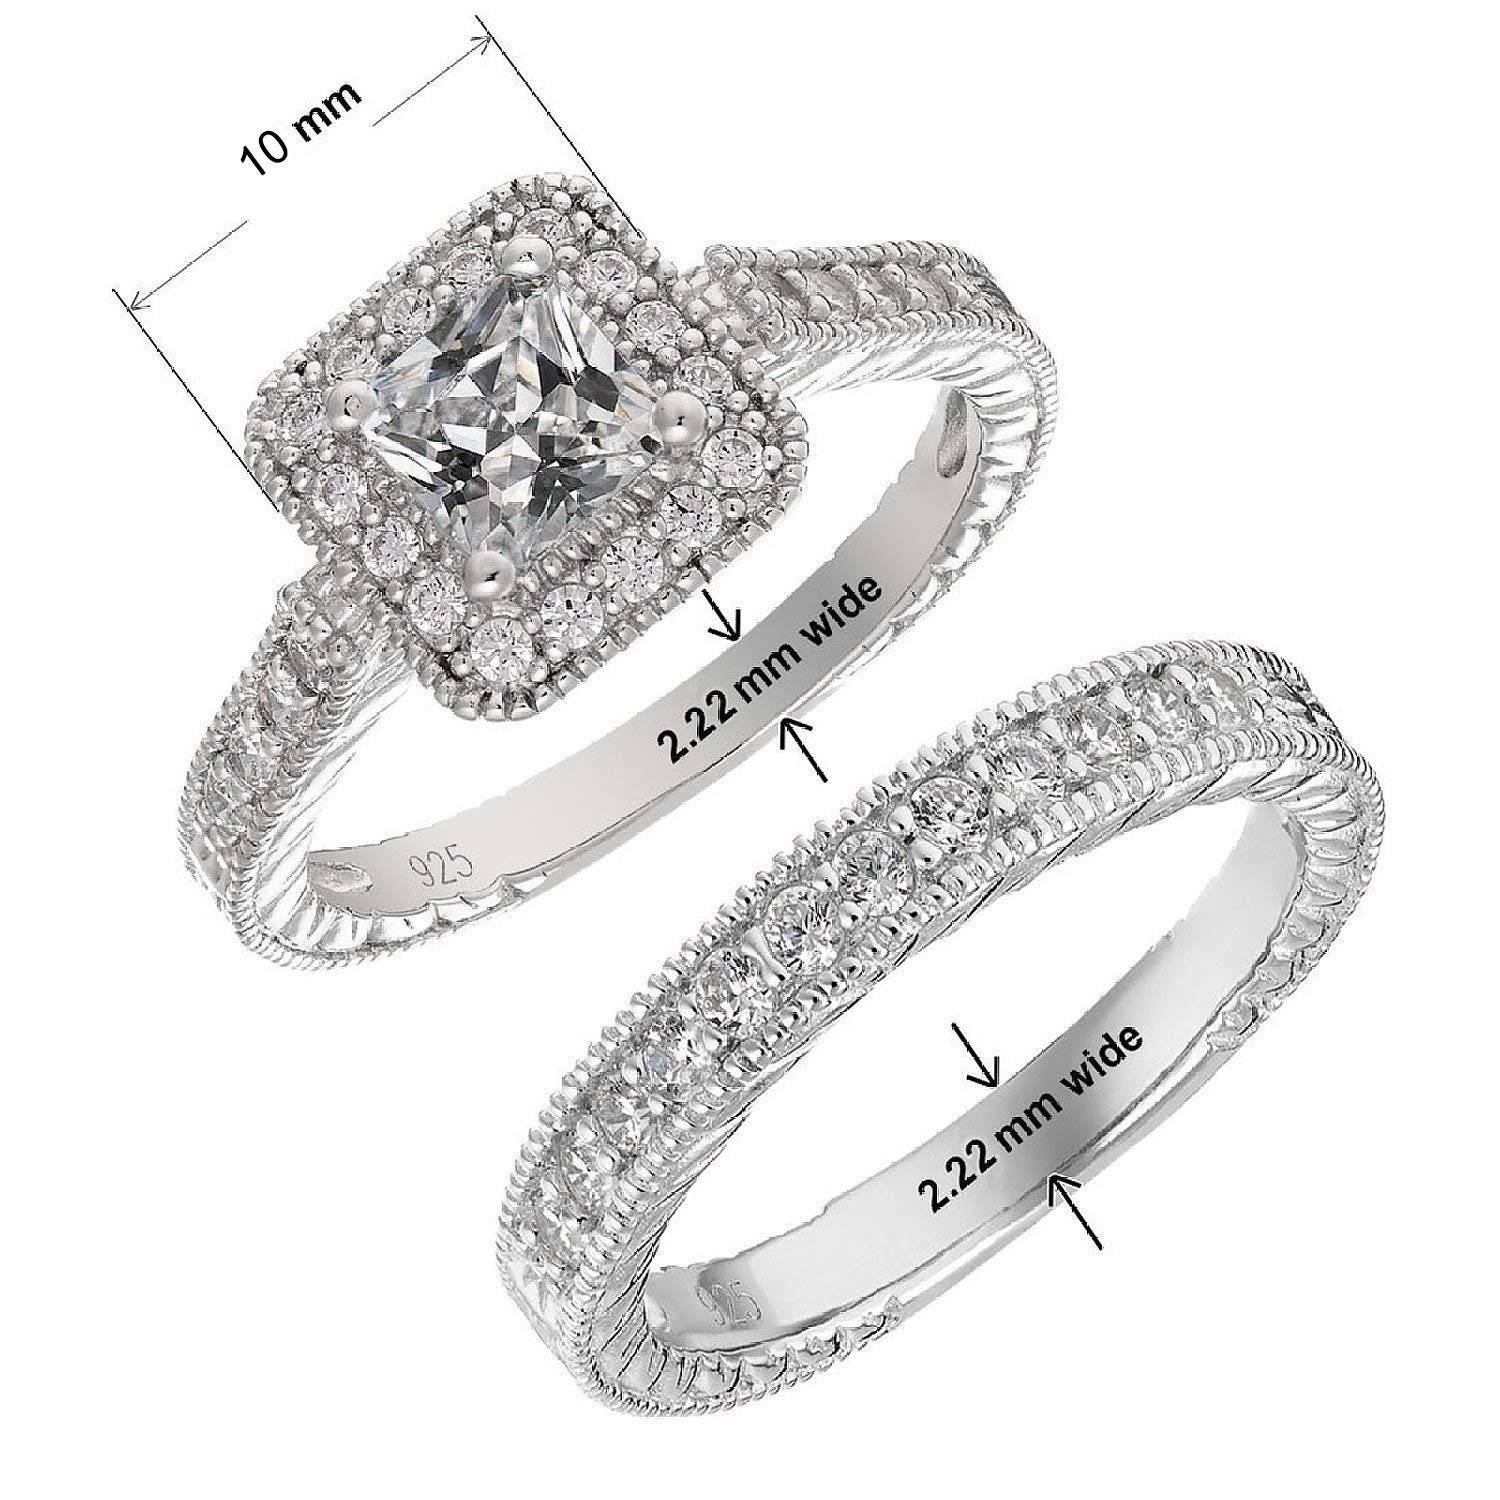 Panghoo Solid 925 Sterling Silver Cz Engagement Wedding Ring Set for Women (5)